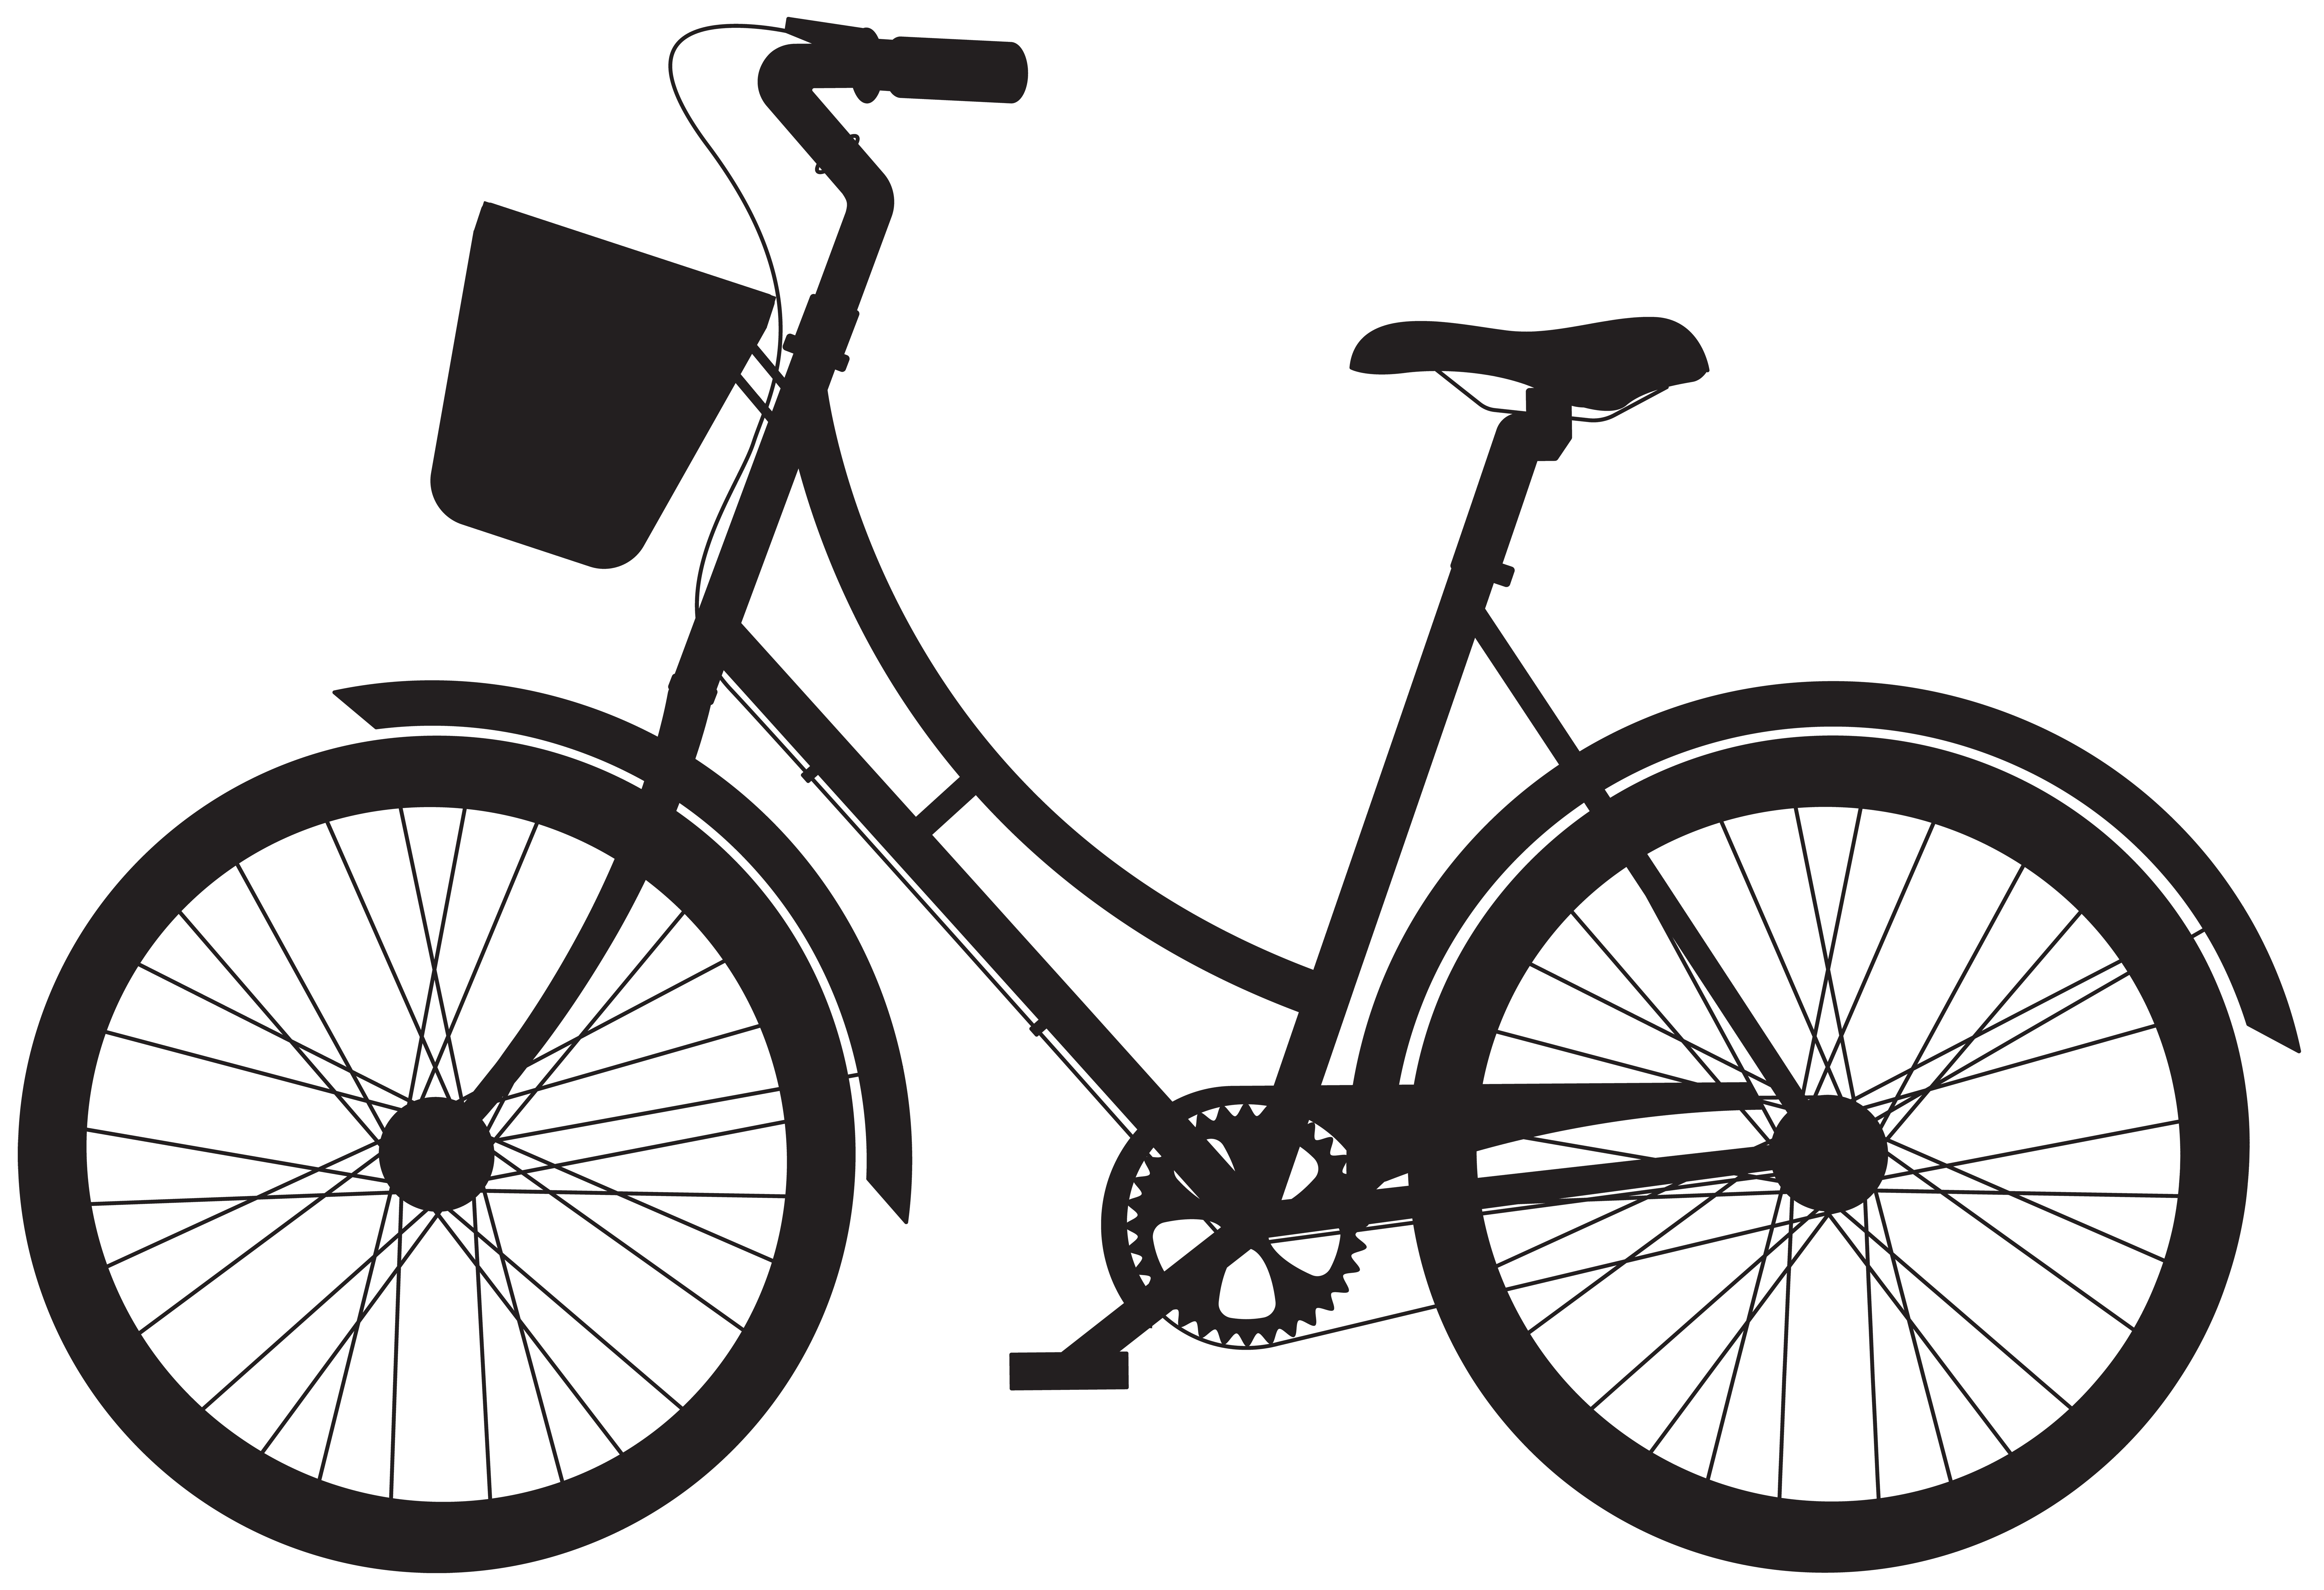 Bicycle with basket silhouette. Cycle clipart antique bike vector transparent library